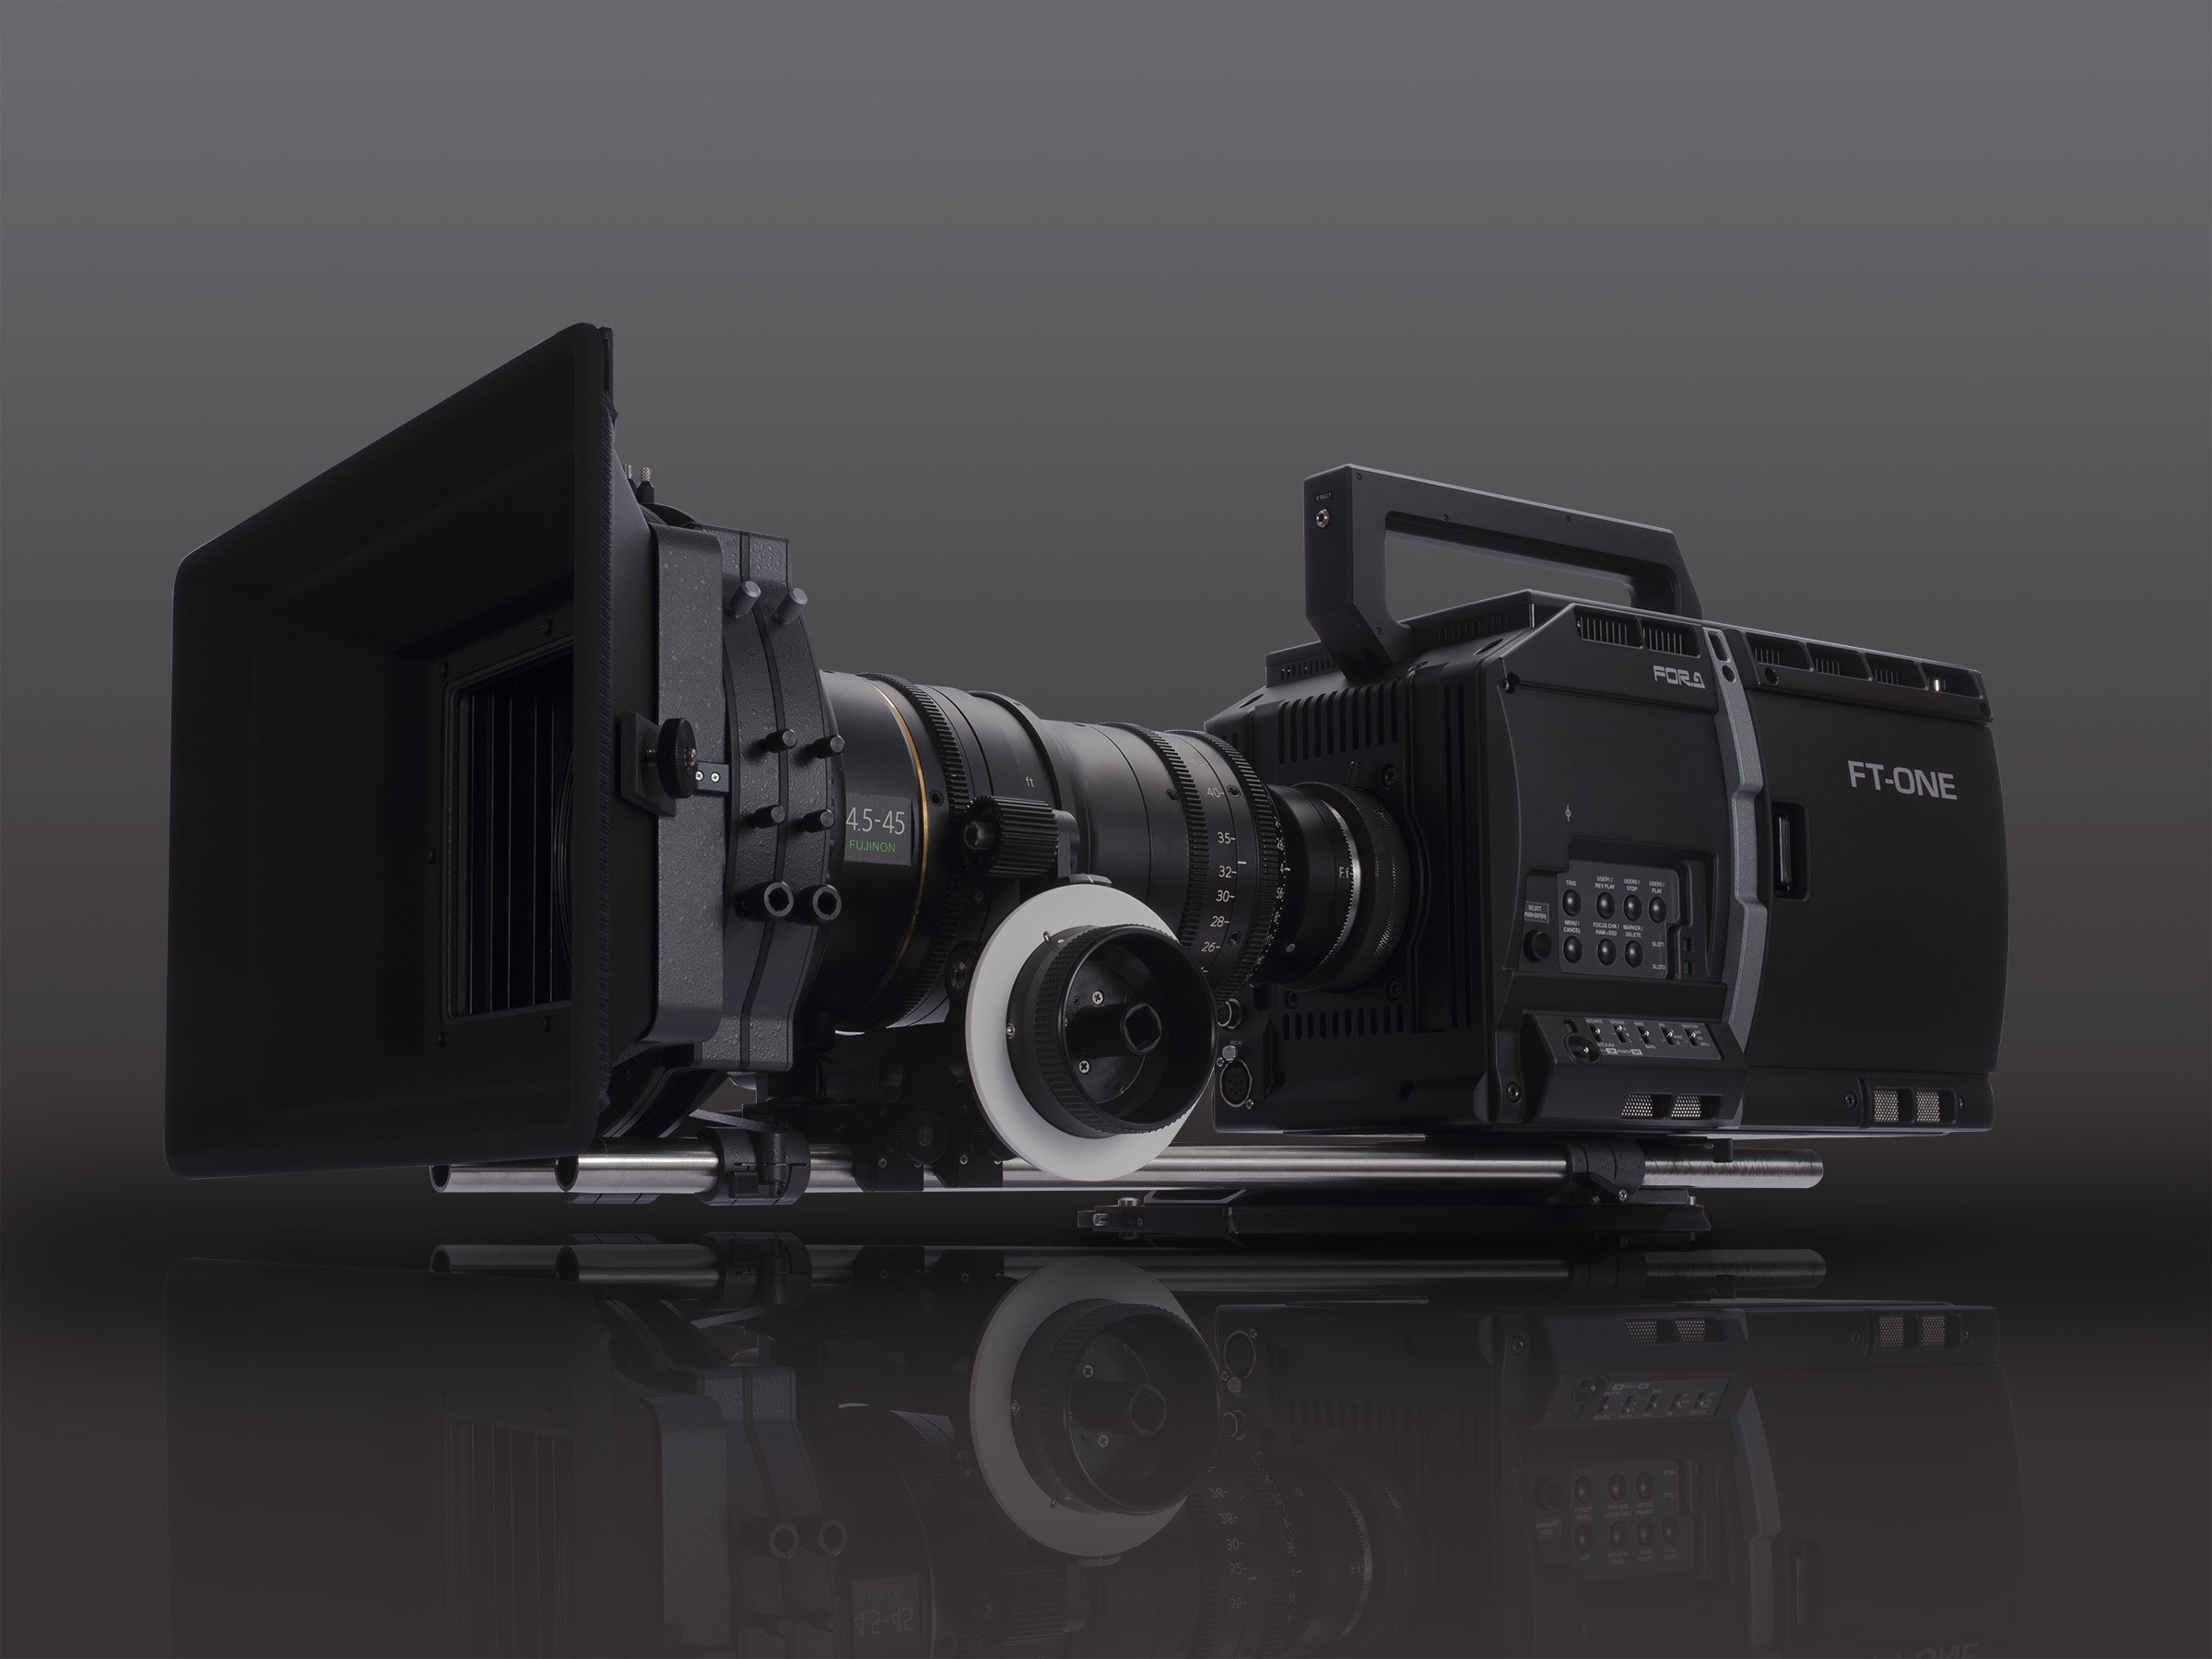 First of the new NAB 2013 camera announcements! FT-One with